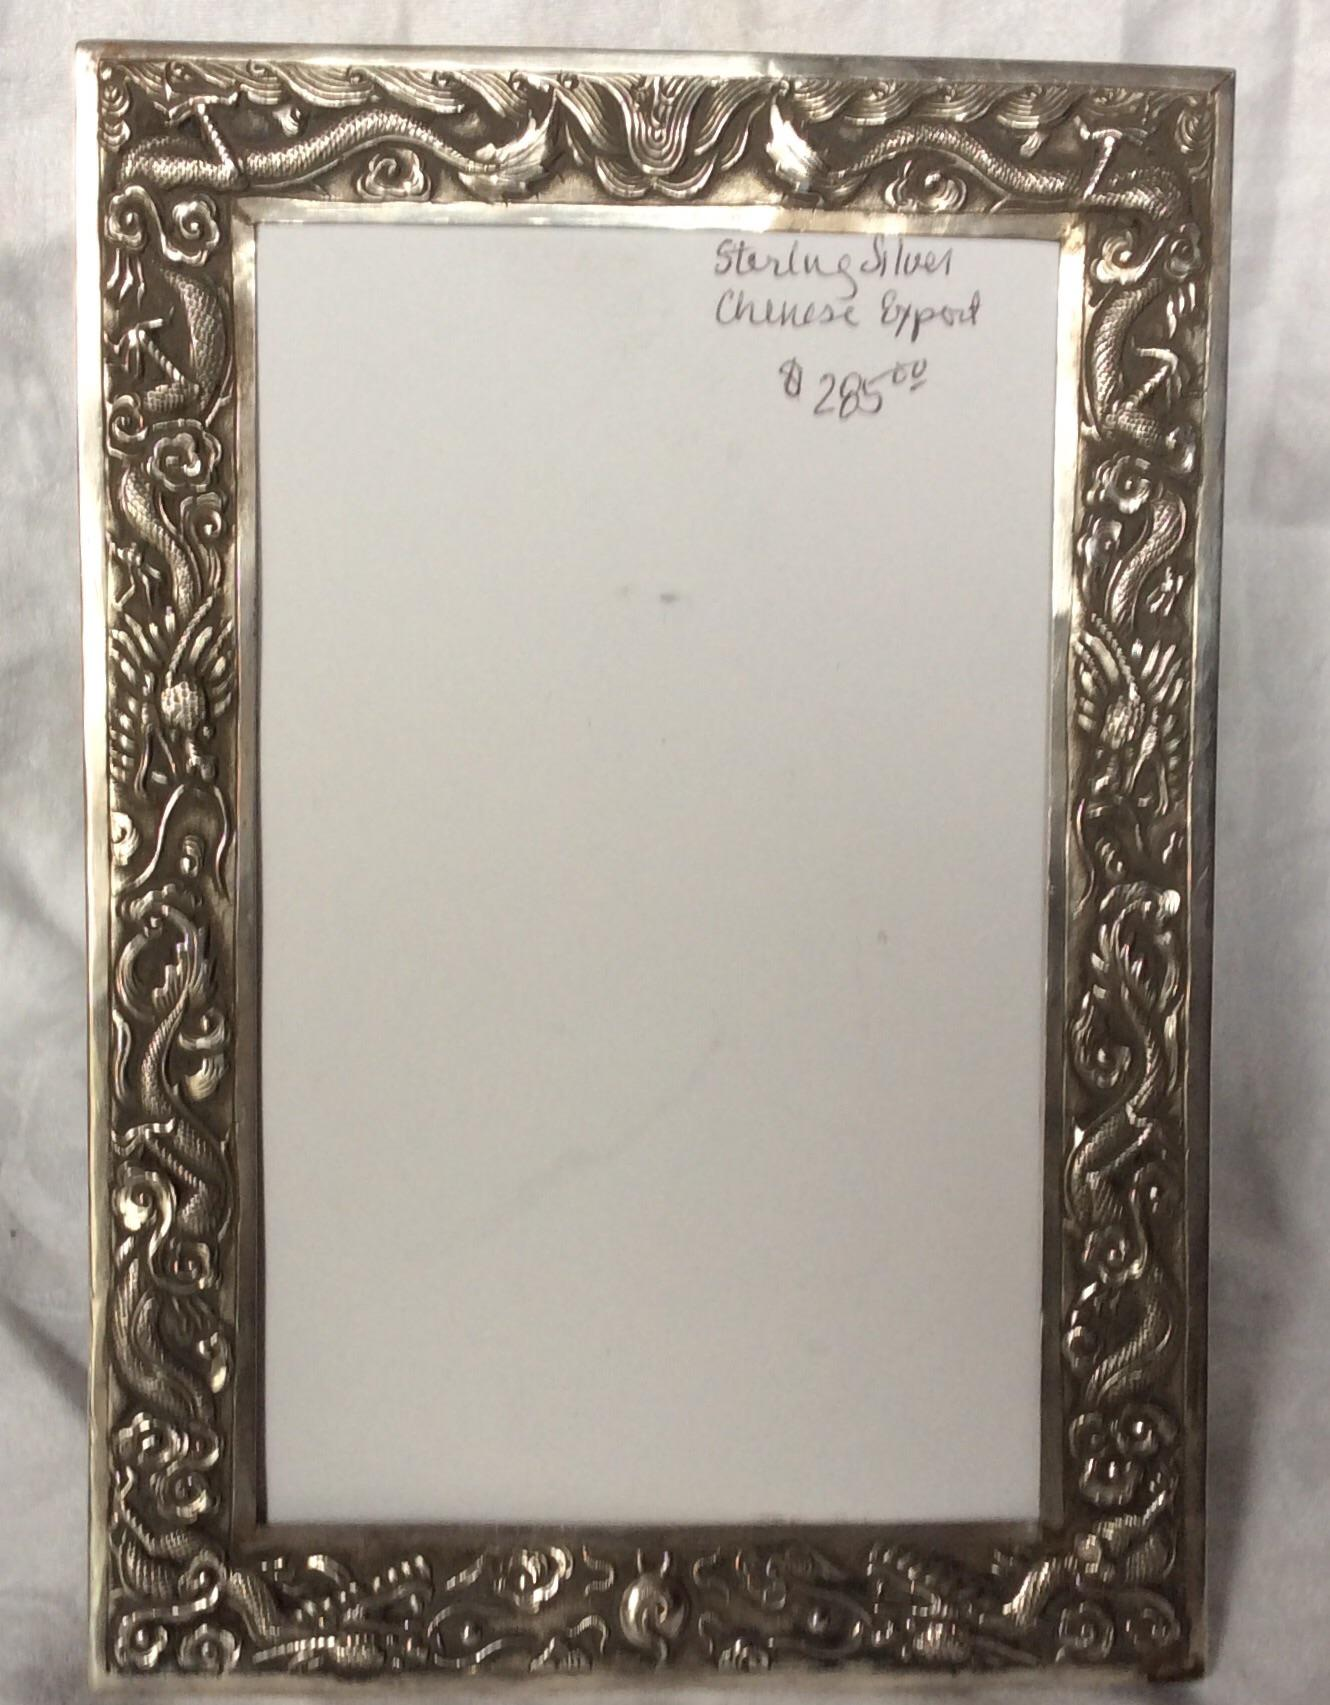 Sophisticated Antique Chinese Export Sterling Silver Frame Decaso